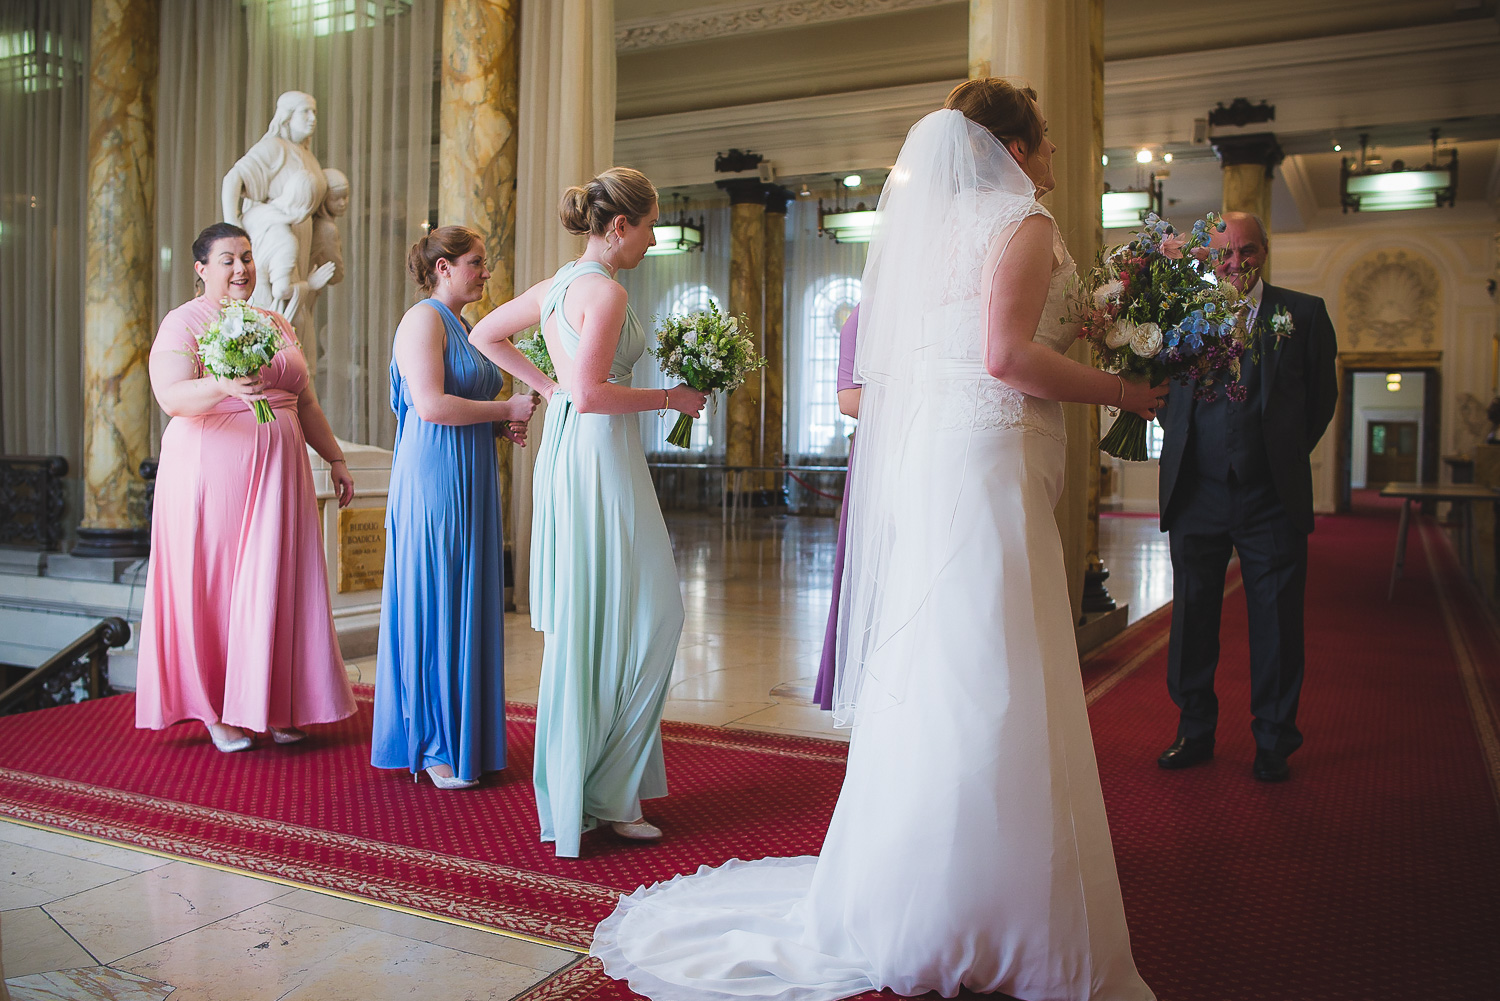 wedding-photographer-cardiff-university-5.jpg